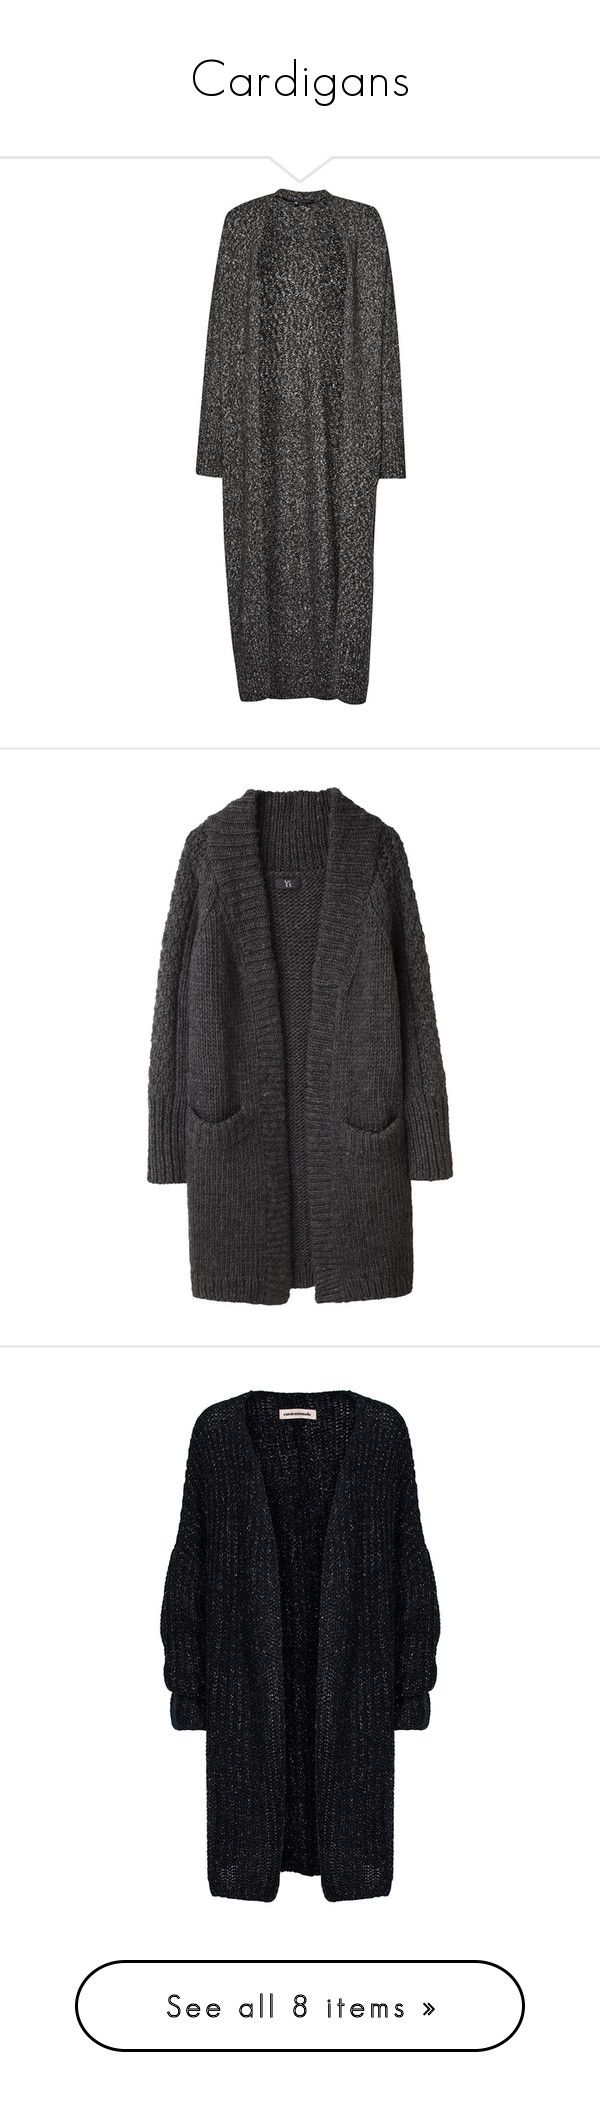 """""""Cardigans"""" by jordan-mobley ❤ liked on Polyvore featuring tops, cardigans, jackets, outerwear, black, clearance, v-neck tops, long slouchy cardigan, side slit maxi top and v neck cardigan"""